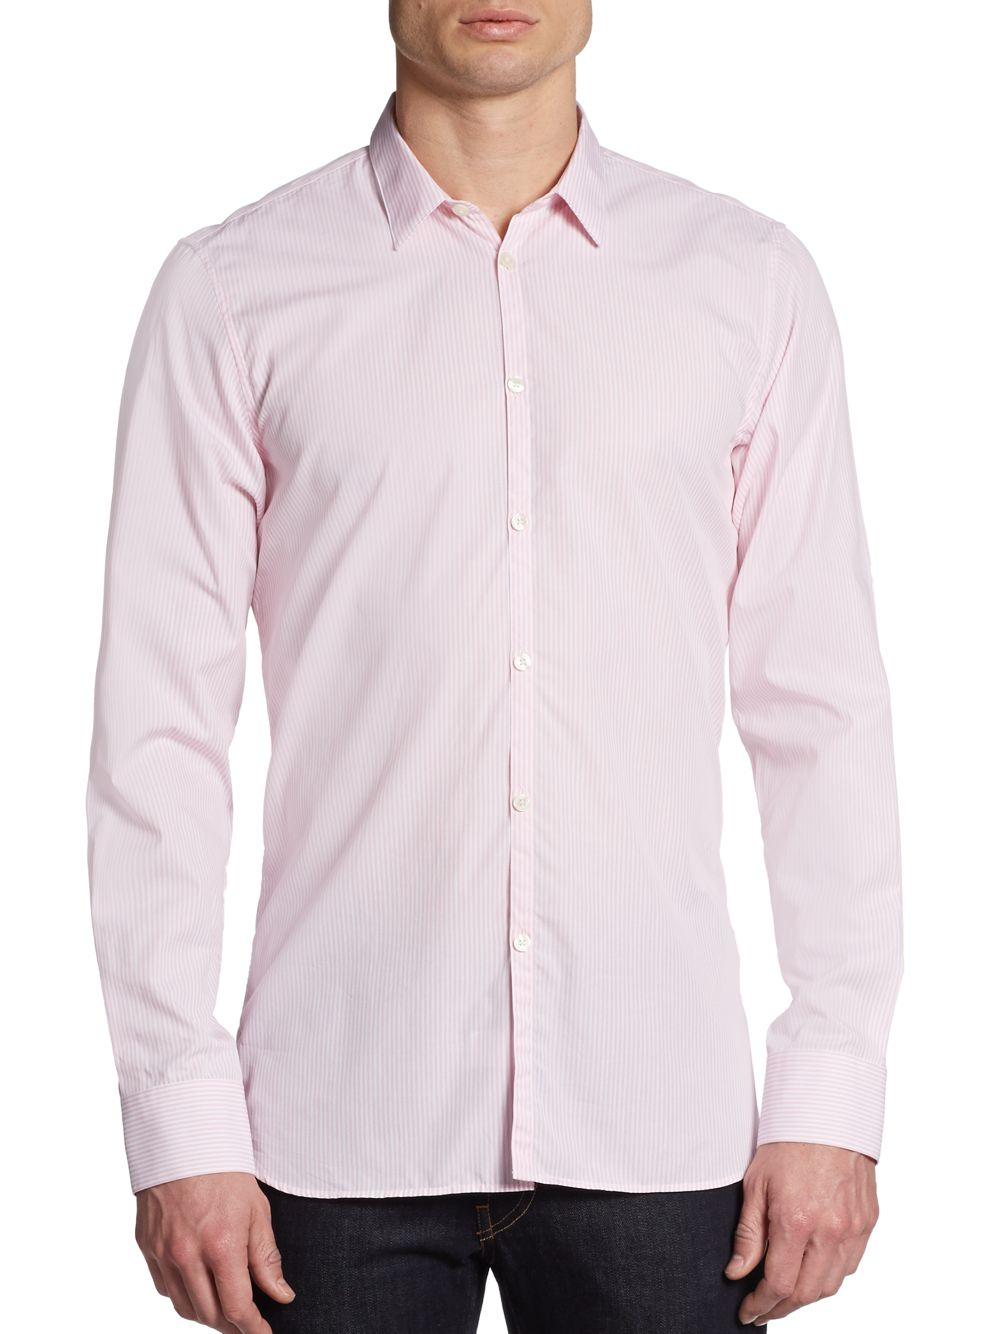 Lyst - Calvin klein Pastel Striped Dress Shirt in Pink for Men